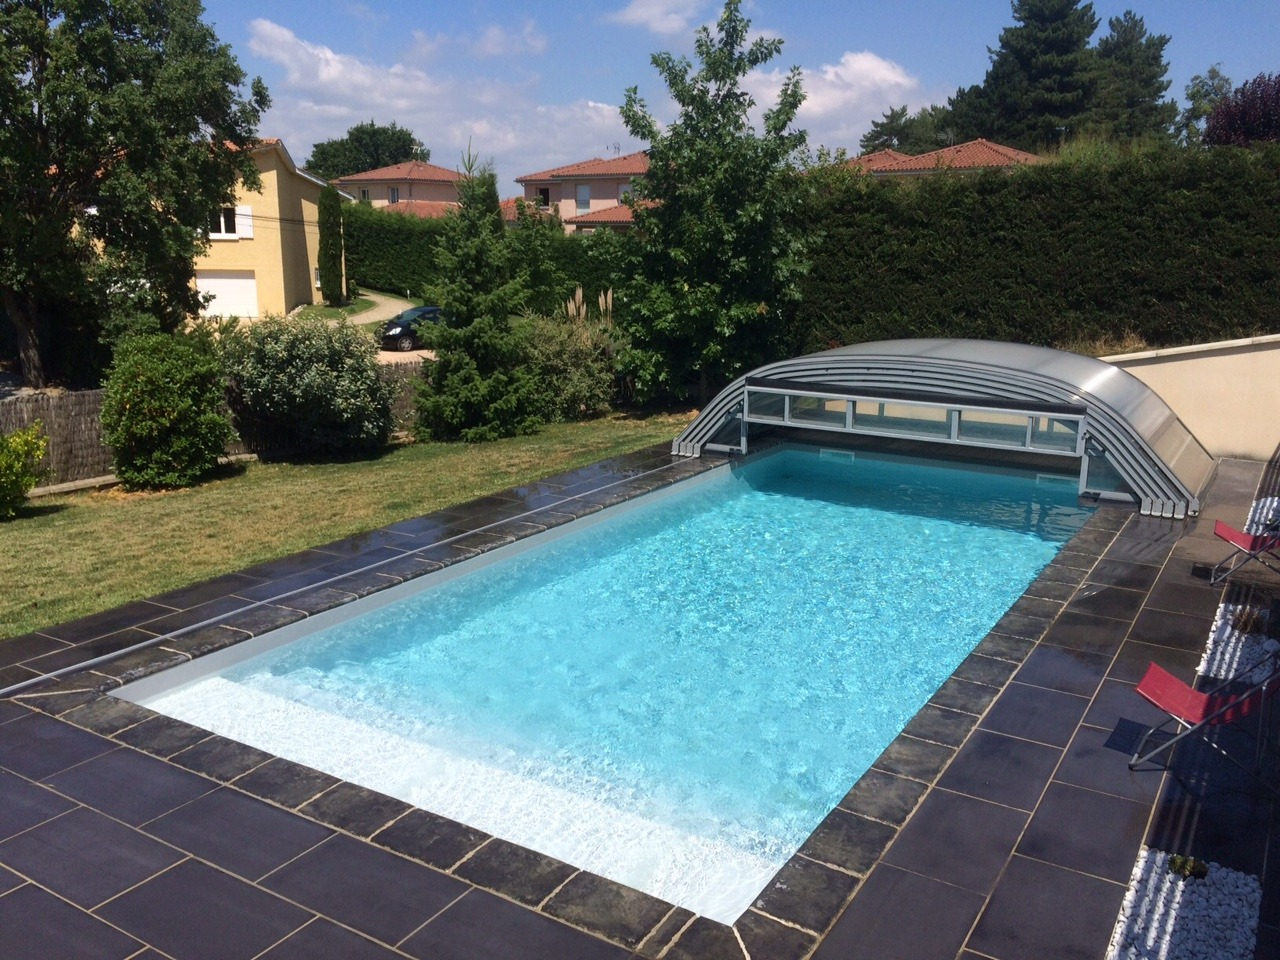 Elitys mianso abri de piscine bas t lescopique ec 39 creation for Des piscines